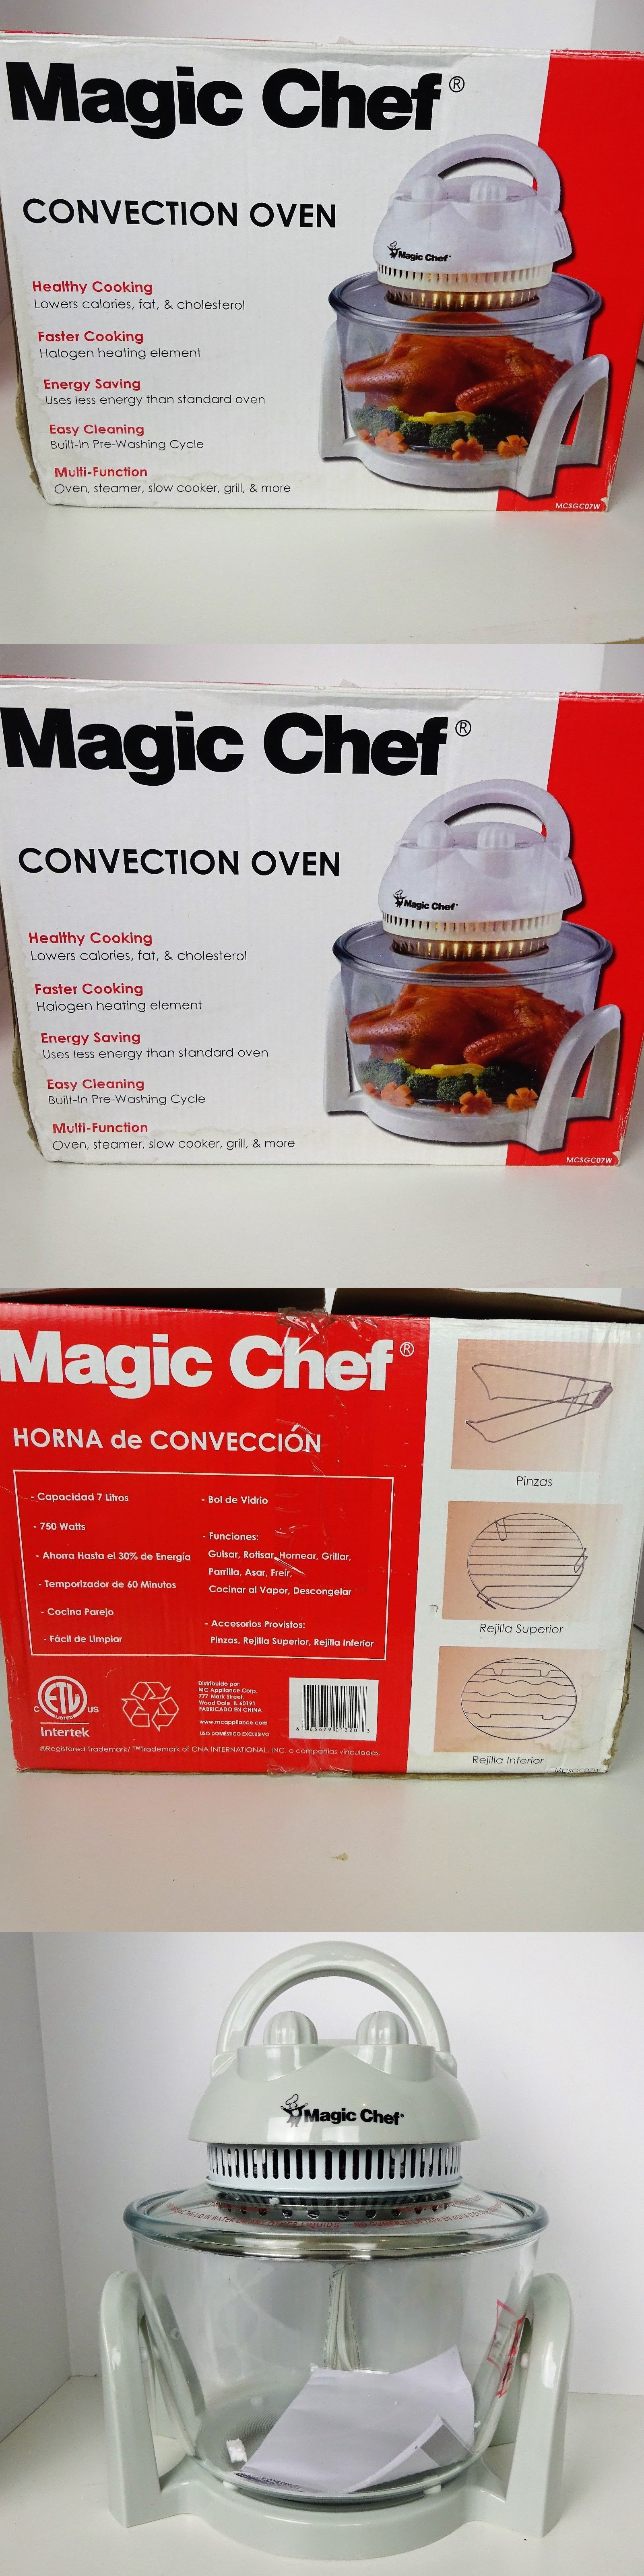 Infrared And Convection Ovens 150139 Magic Chef 7 Liters